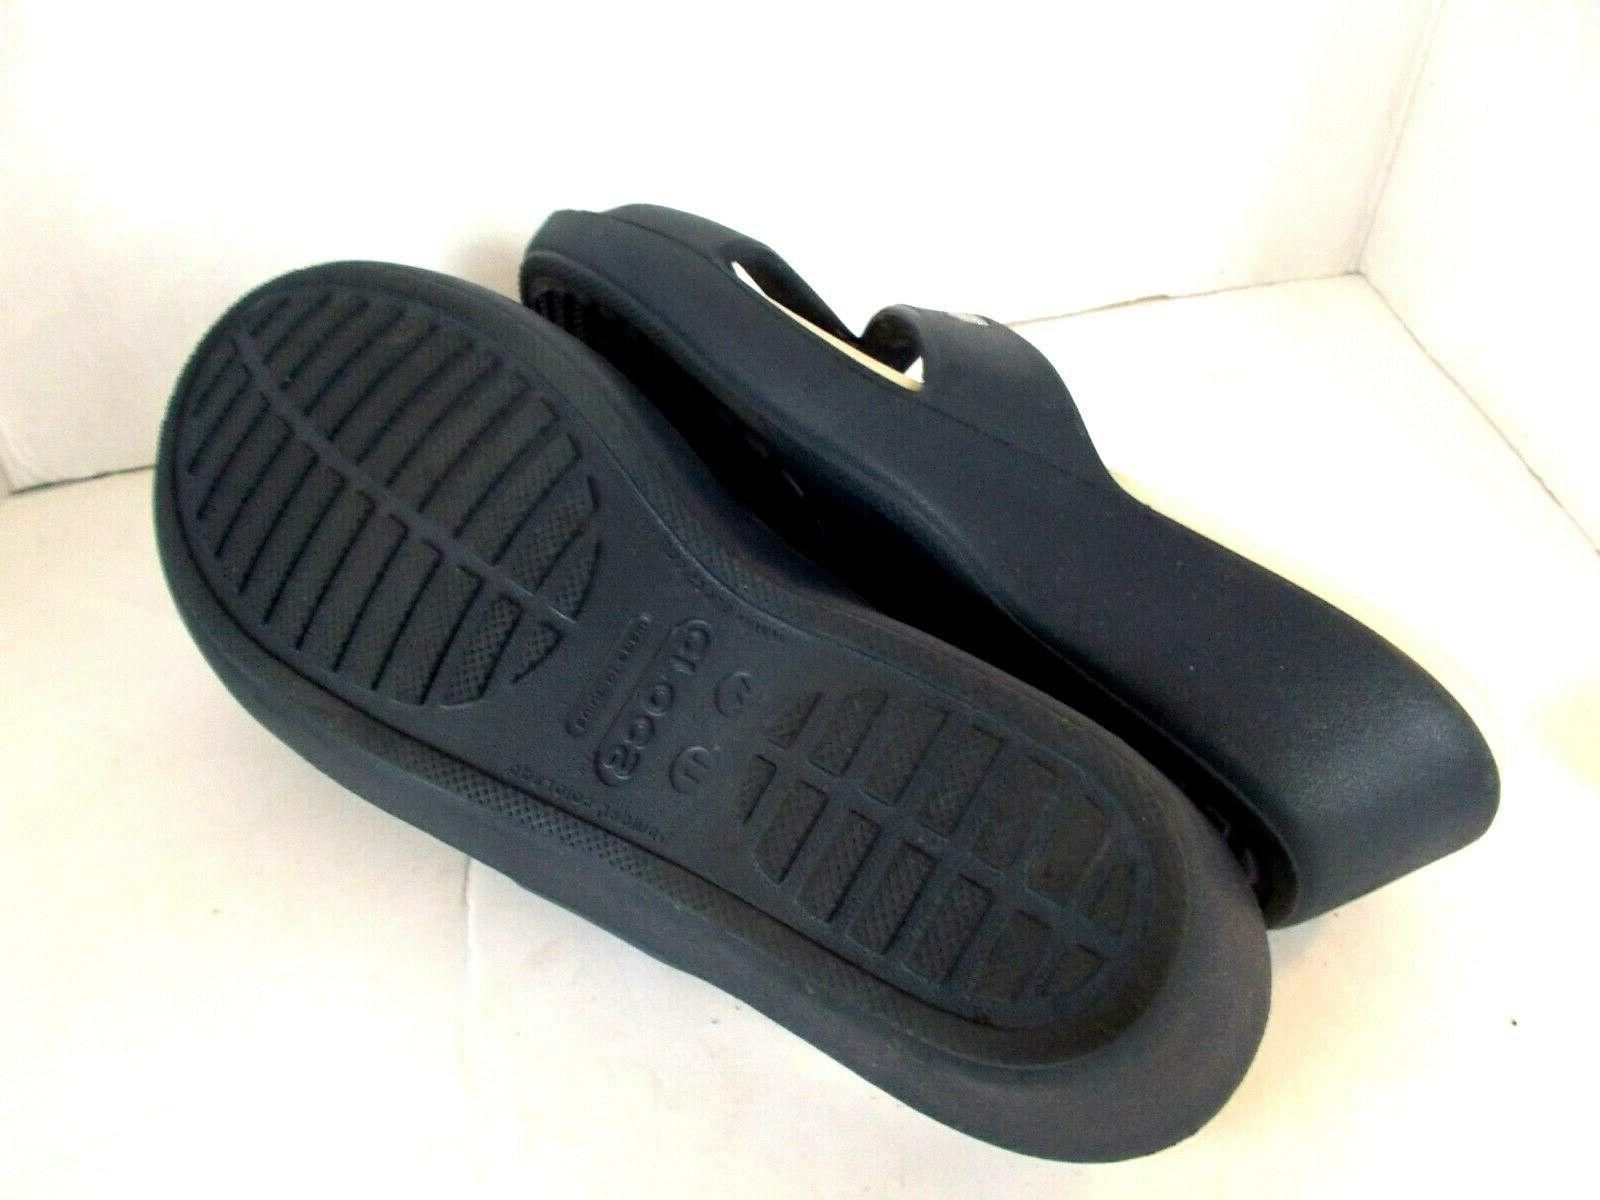 Crocs II Two Slide Wedge Sandals, Size 11